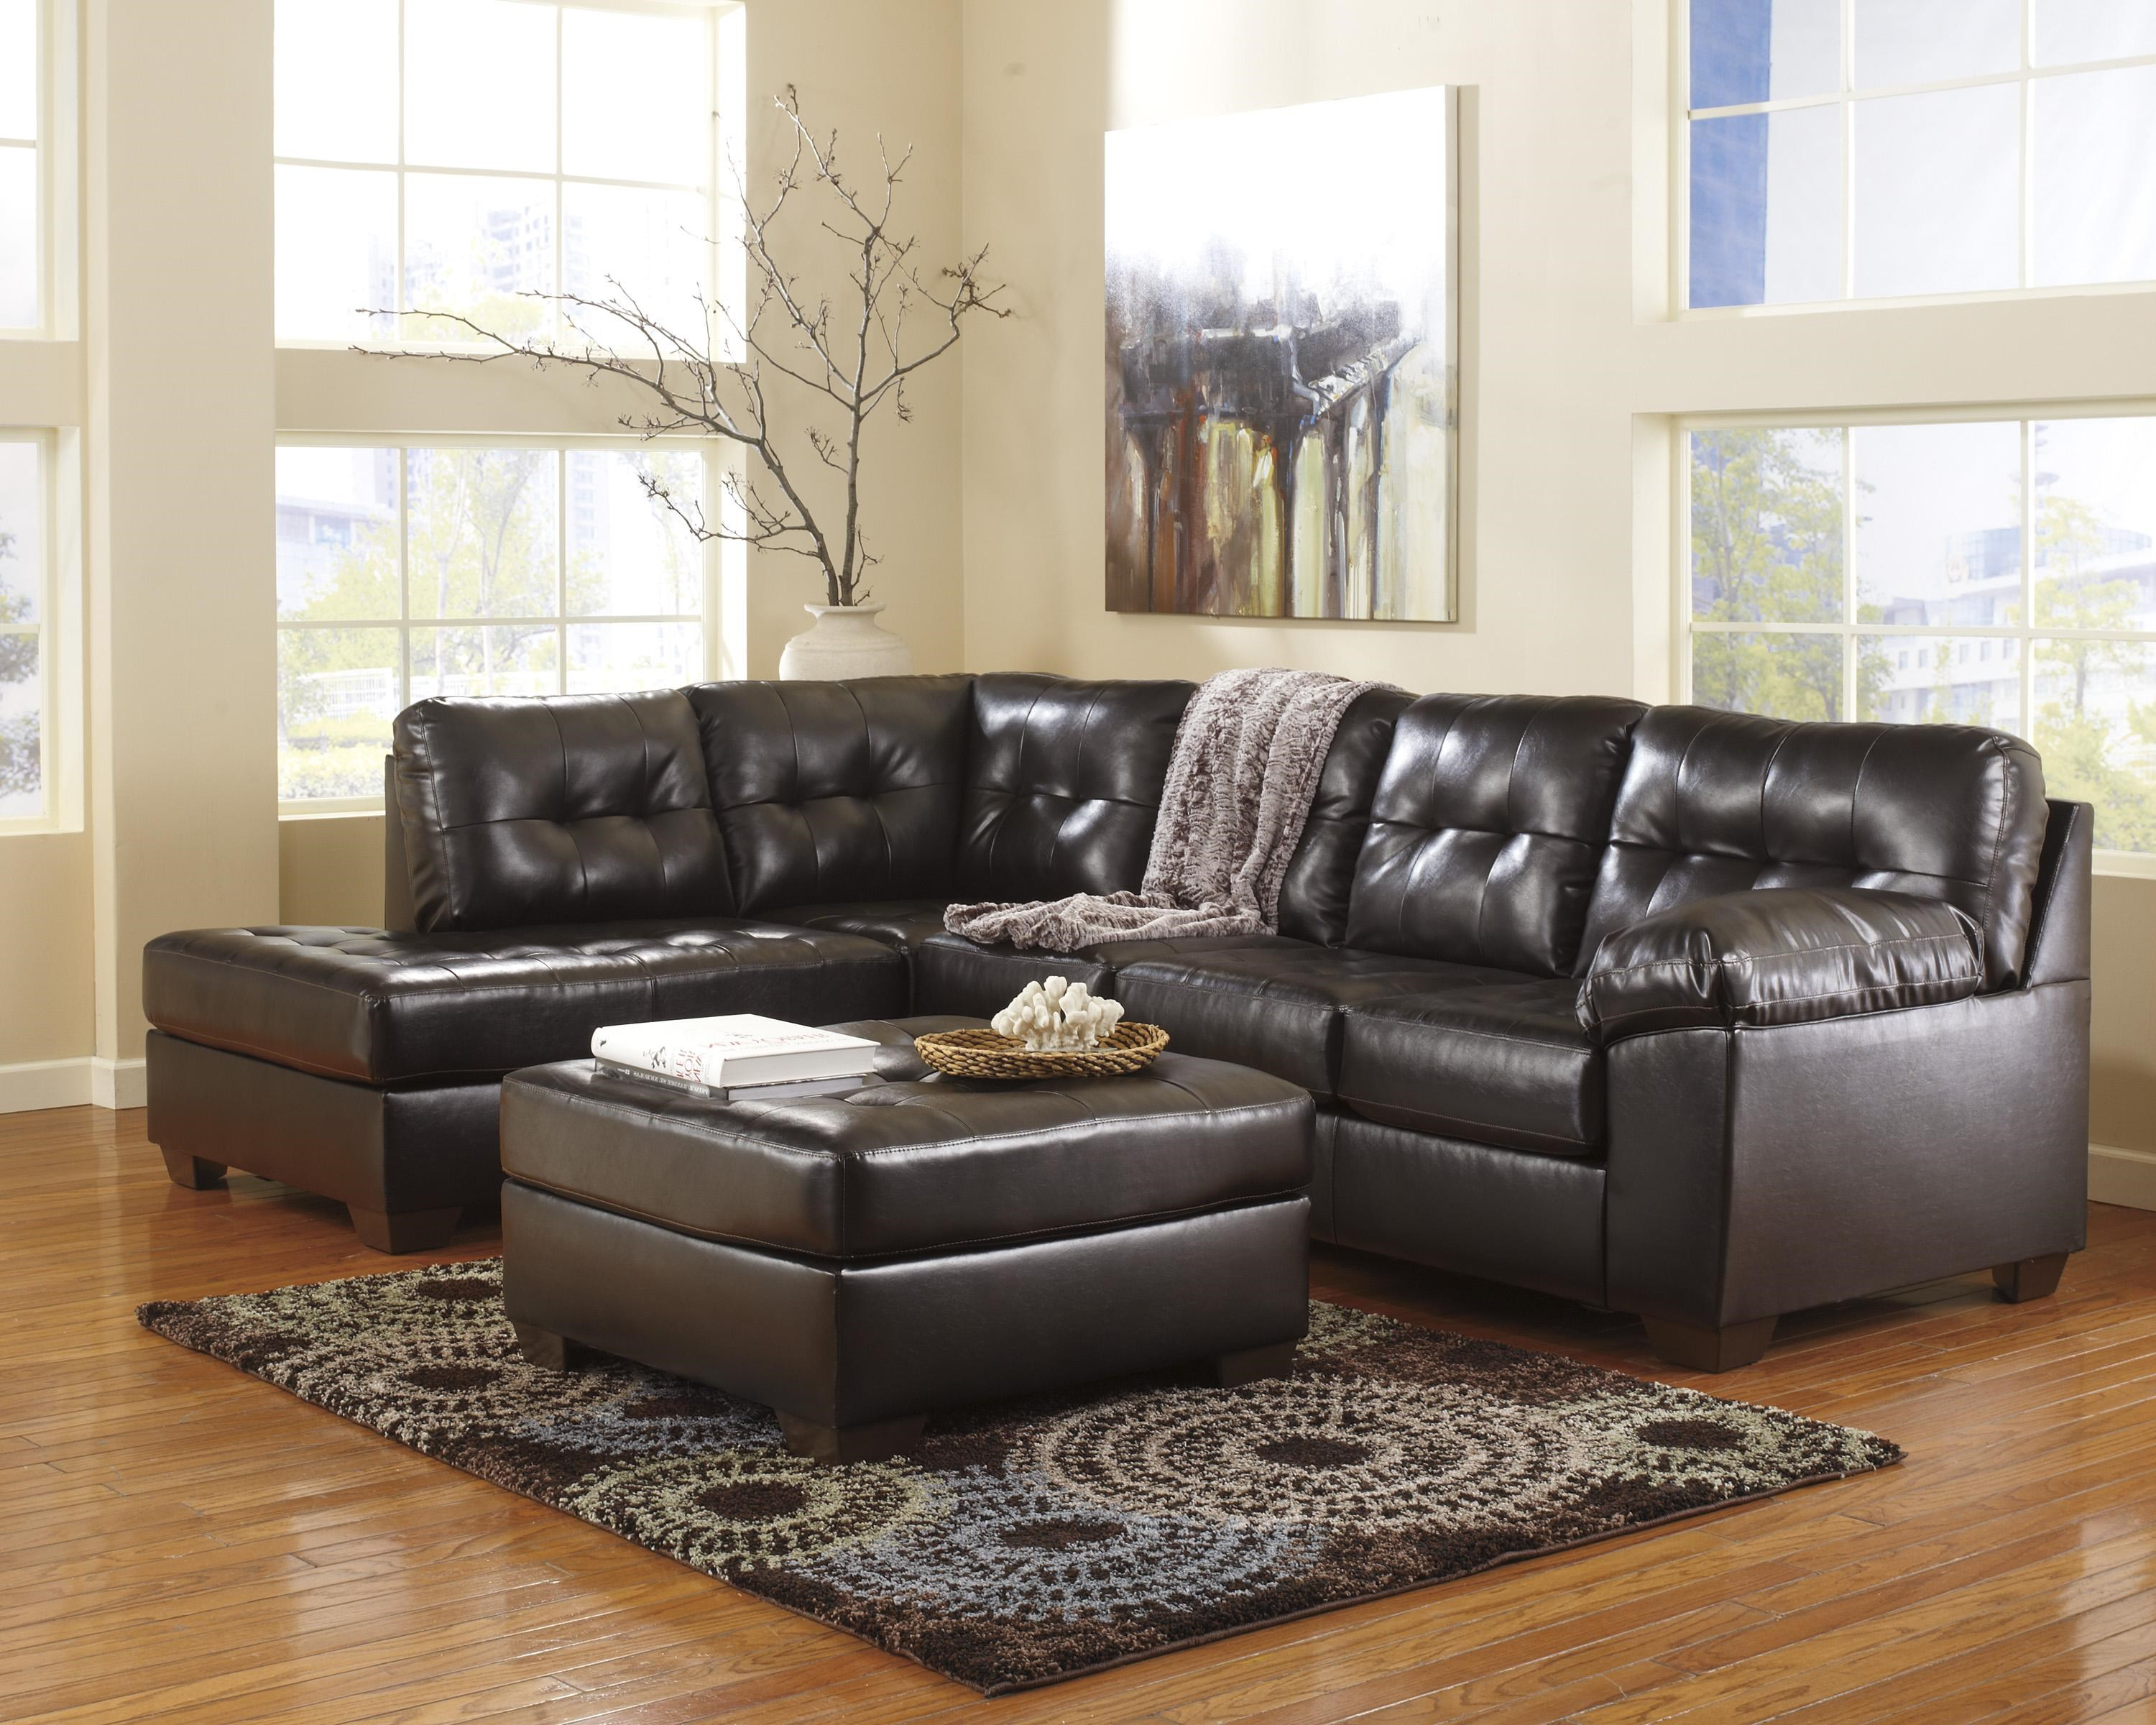 Genial Signature Design By Ashley Alliston DuraBlend®   Chocolate Stationary  Living Room Group